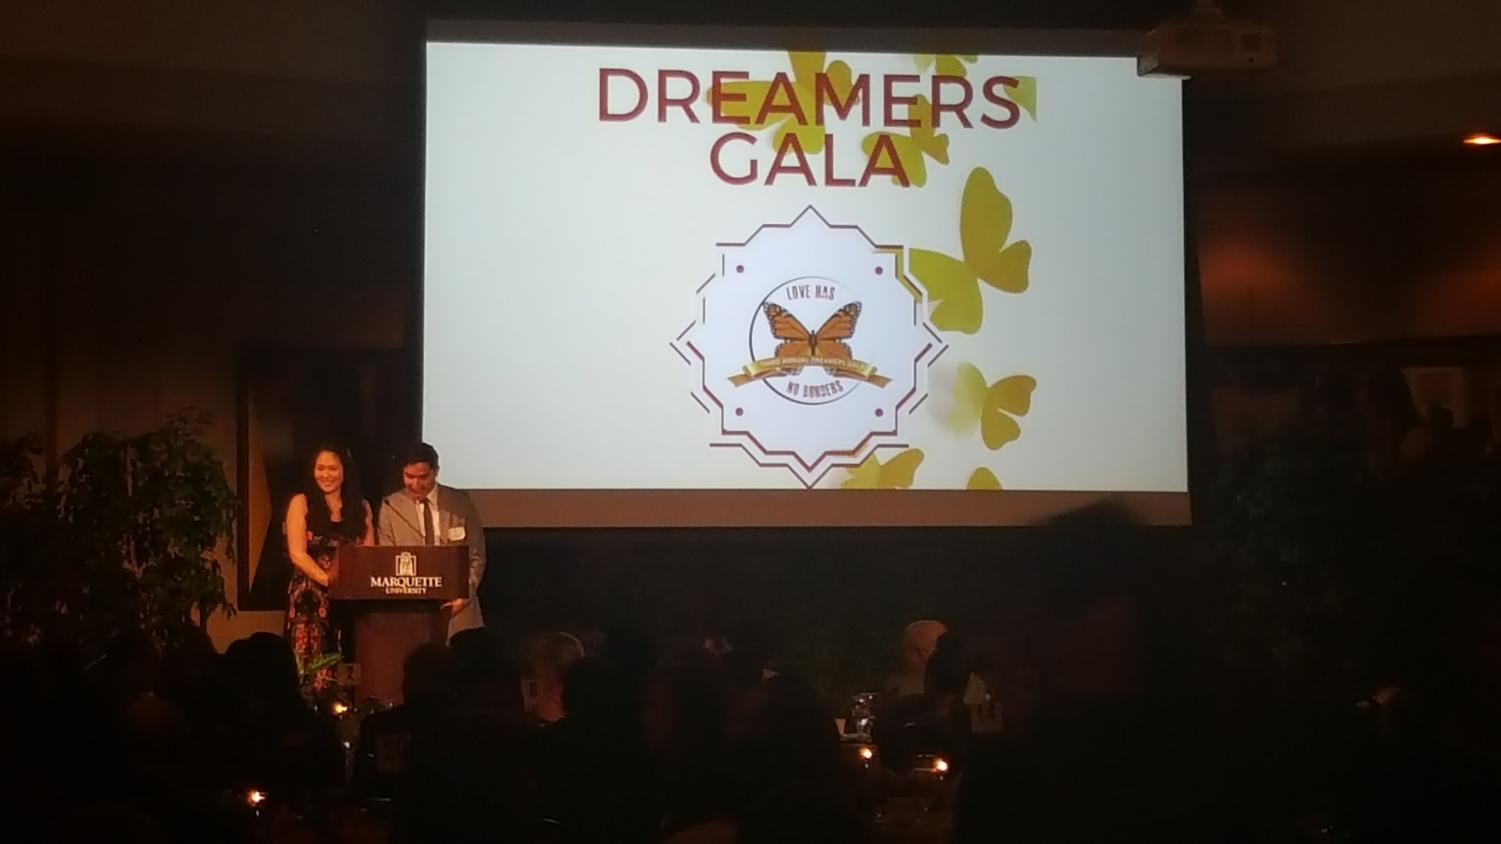 Victoria Gokee and Luis Jimenez speak at the Dreamer's Gala event.